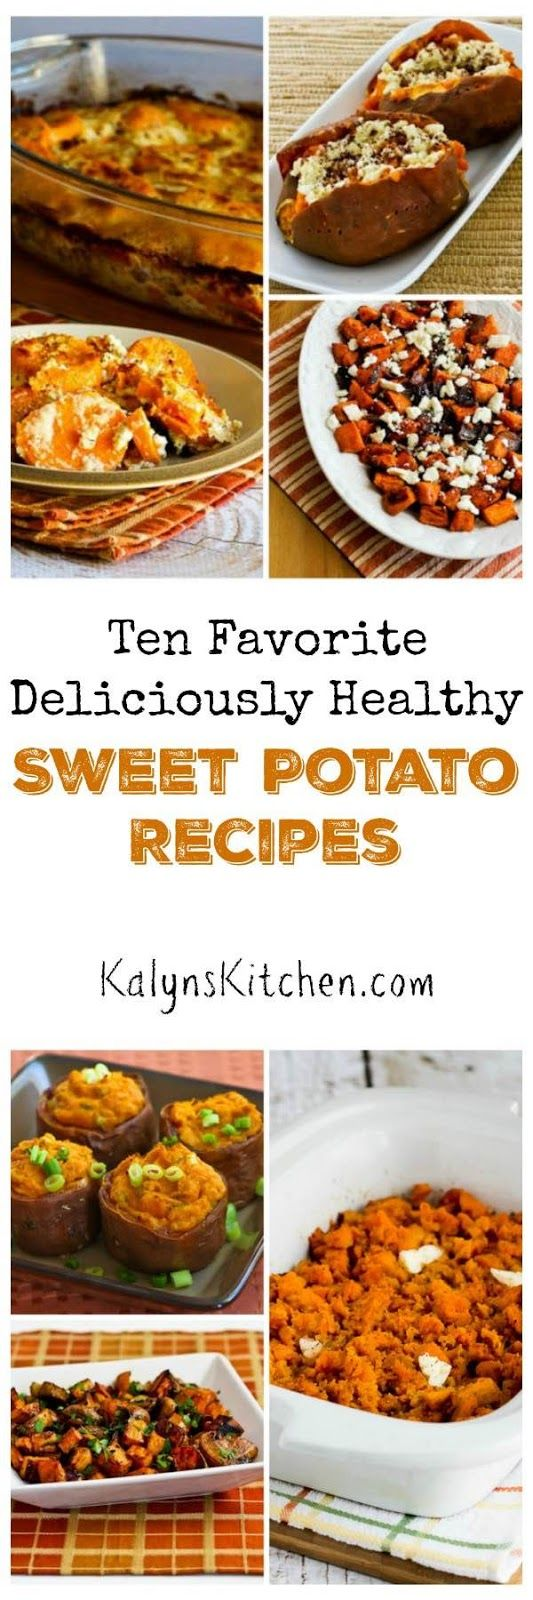 I'm a big fan of savory sweet potato dishes, and here are my Ten Favorite Deliciously Healthy Sweet Potato Recipes. All these recipes are perfect for a holiday meal, but I eat sweet potatoes all winter long! [found on KalynsKitchen.com] http://www.youtube.com/watch?v=Z_-vfrTjY84